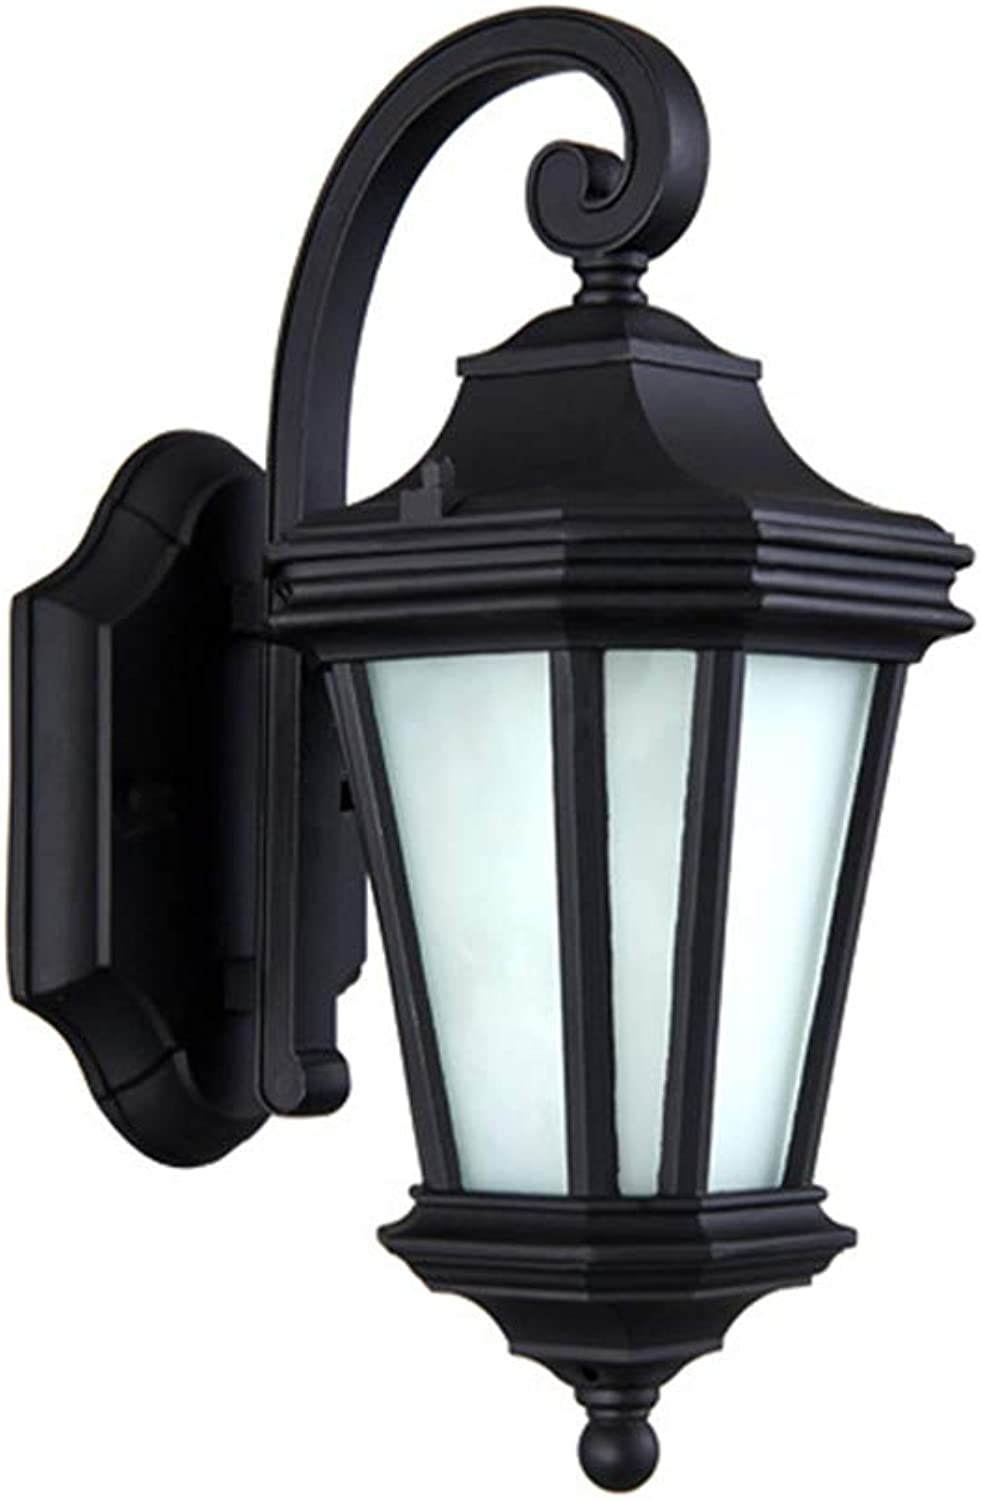 Outdoor Led Wall Sconce Octagon Lantern Wall Mounted Security Lights Garden Fence Yard Classic Simple Room Outdoor Wall Waterproof Garden Light Balcony Aisle Light (21  14  34cm)